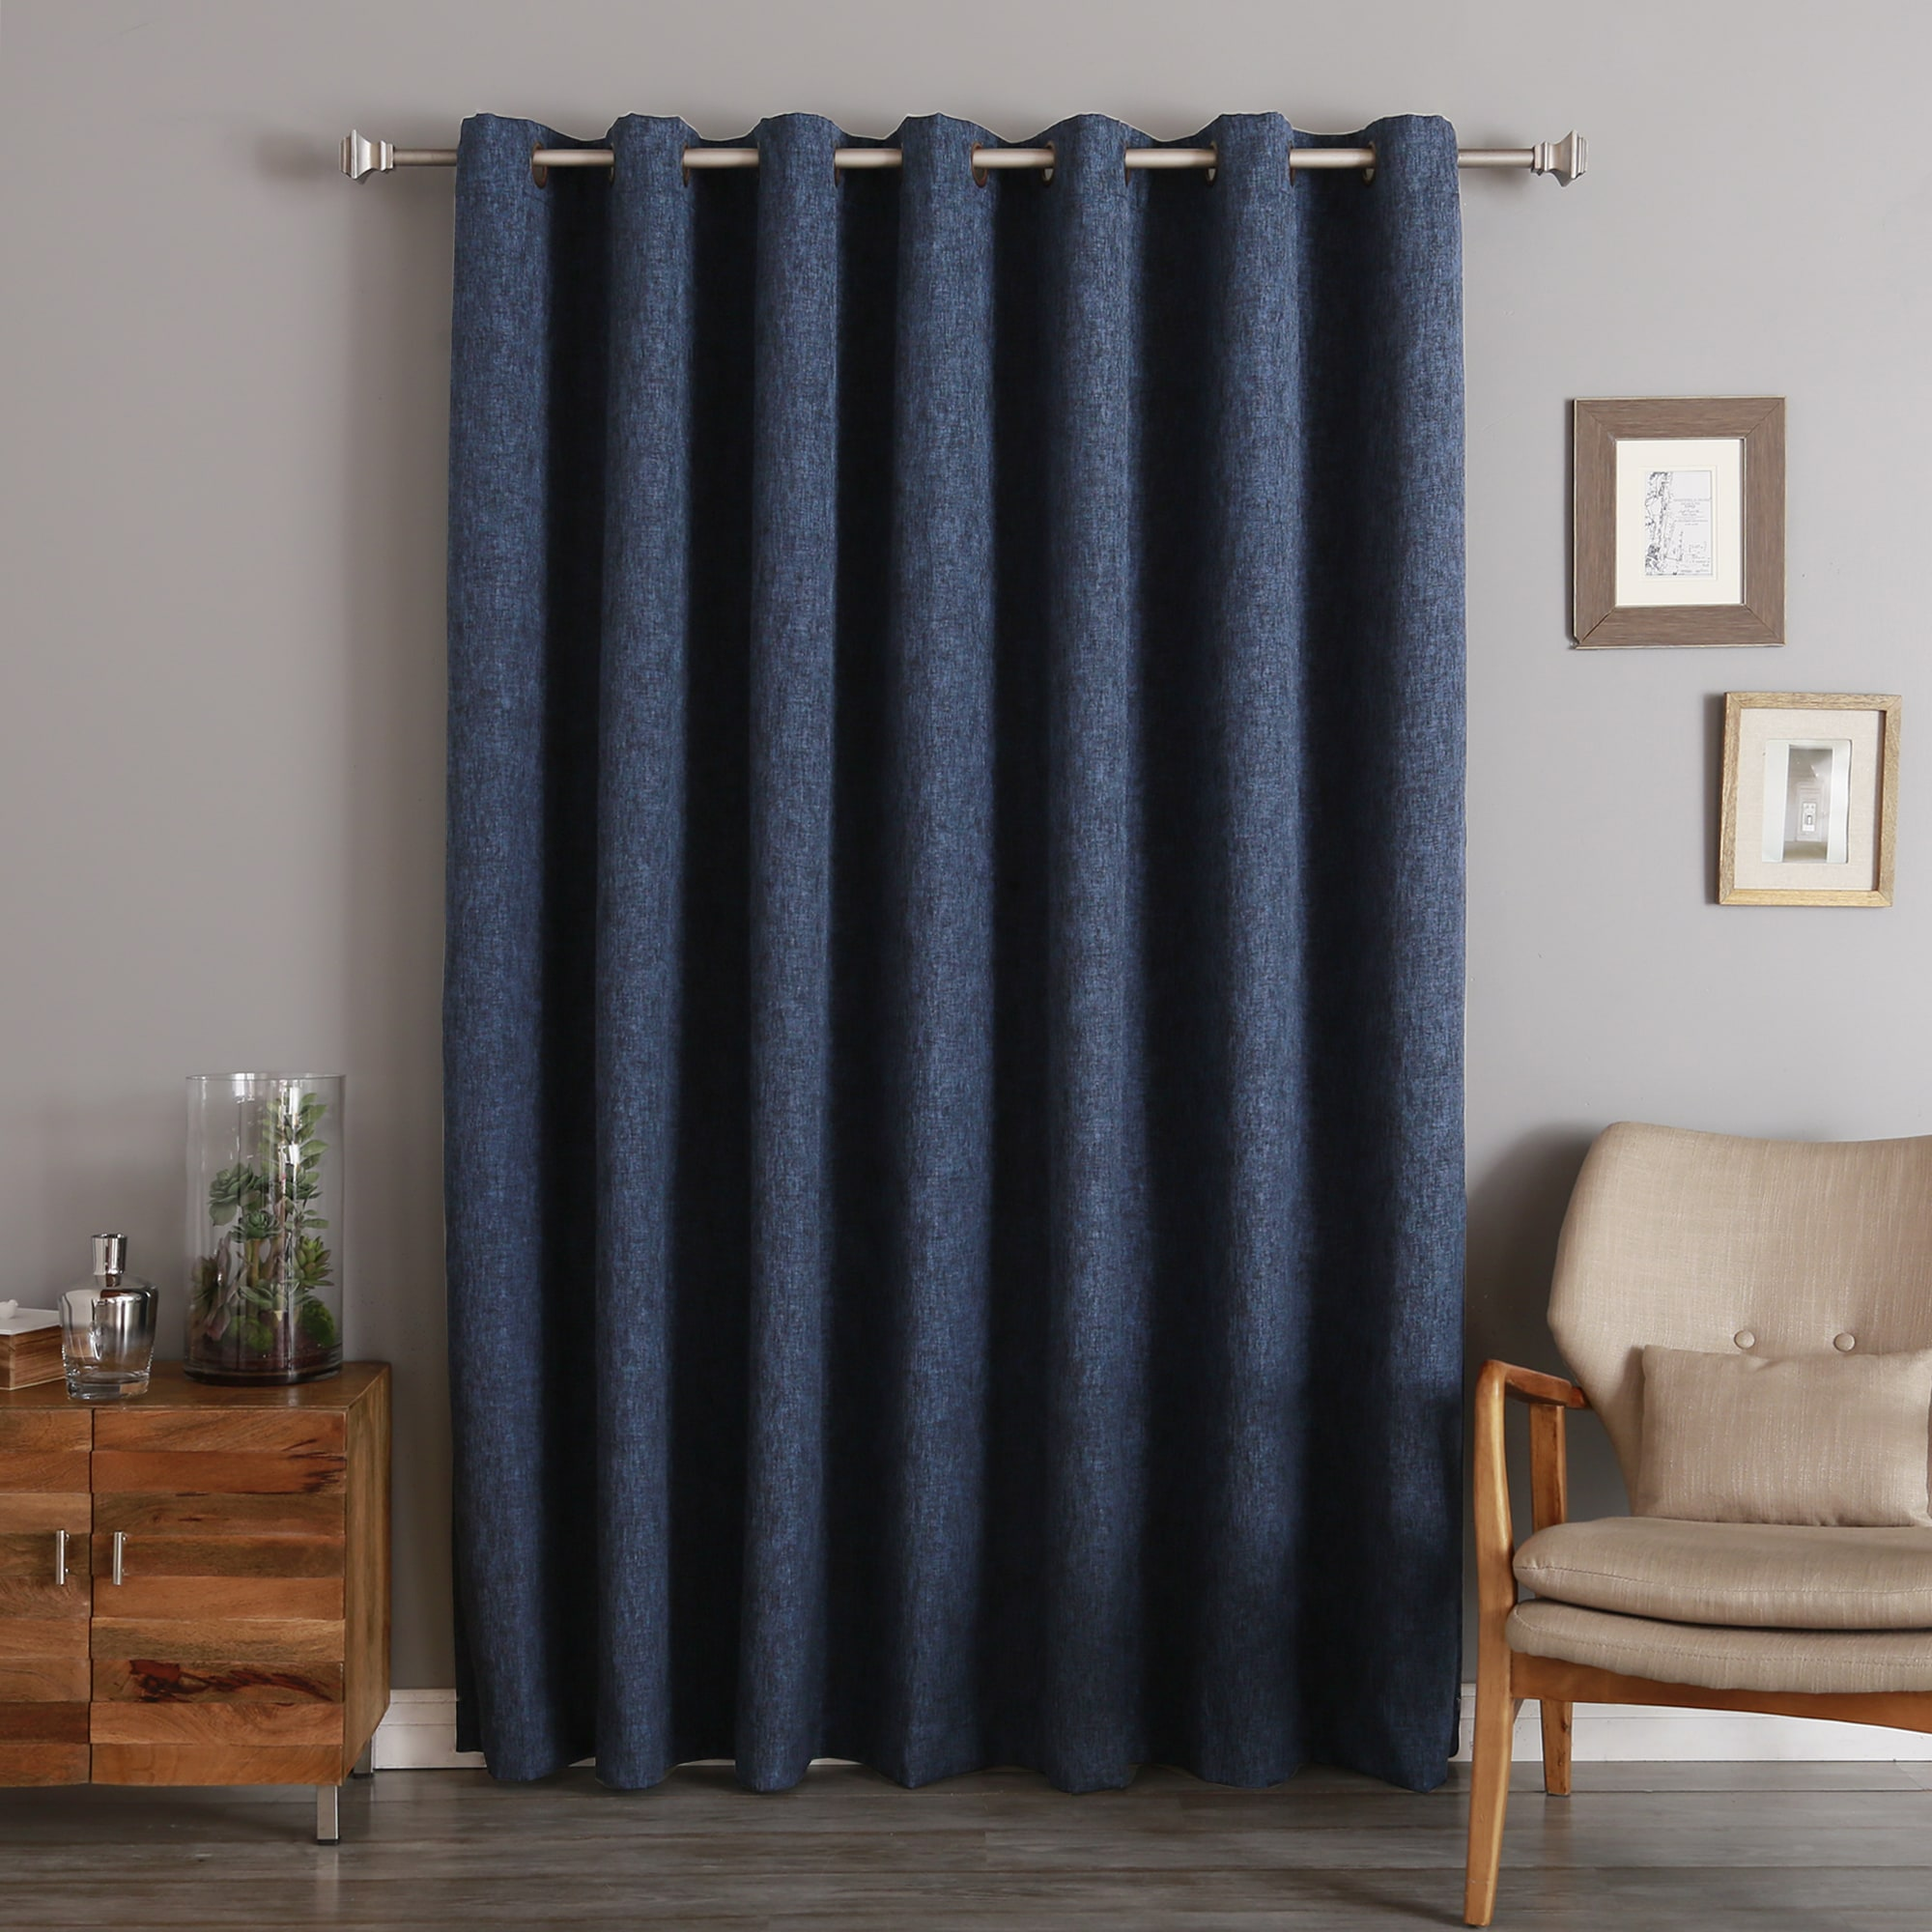 guide curtain measuring standard curtains the size blog width linen a height perfect shower store